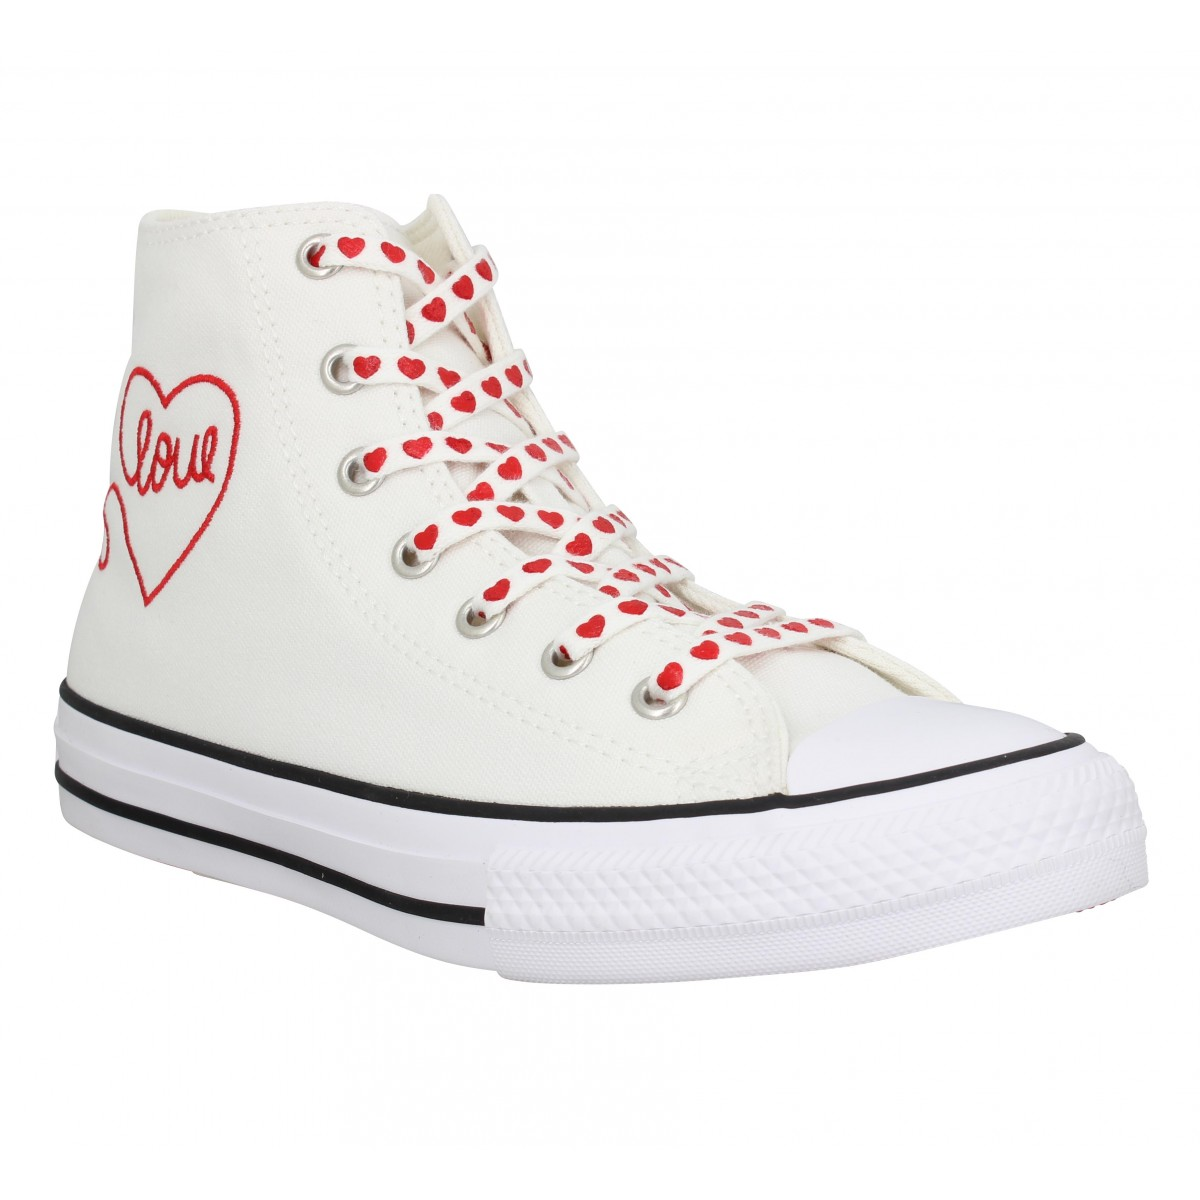 Baskets CONVERSE CT All Star Hi Valentine's Day toile Enfant Blanc Rouge